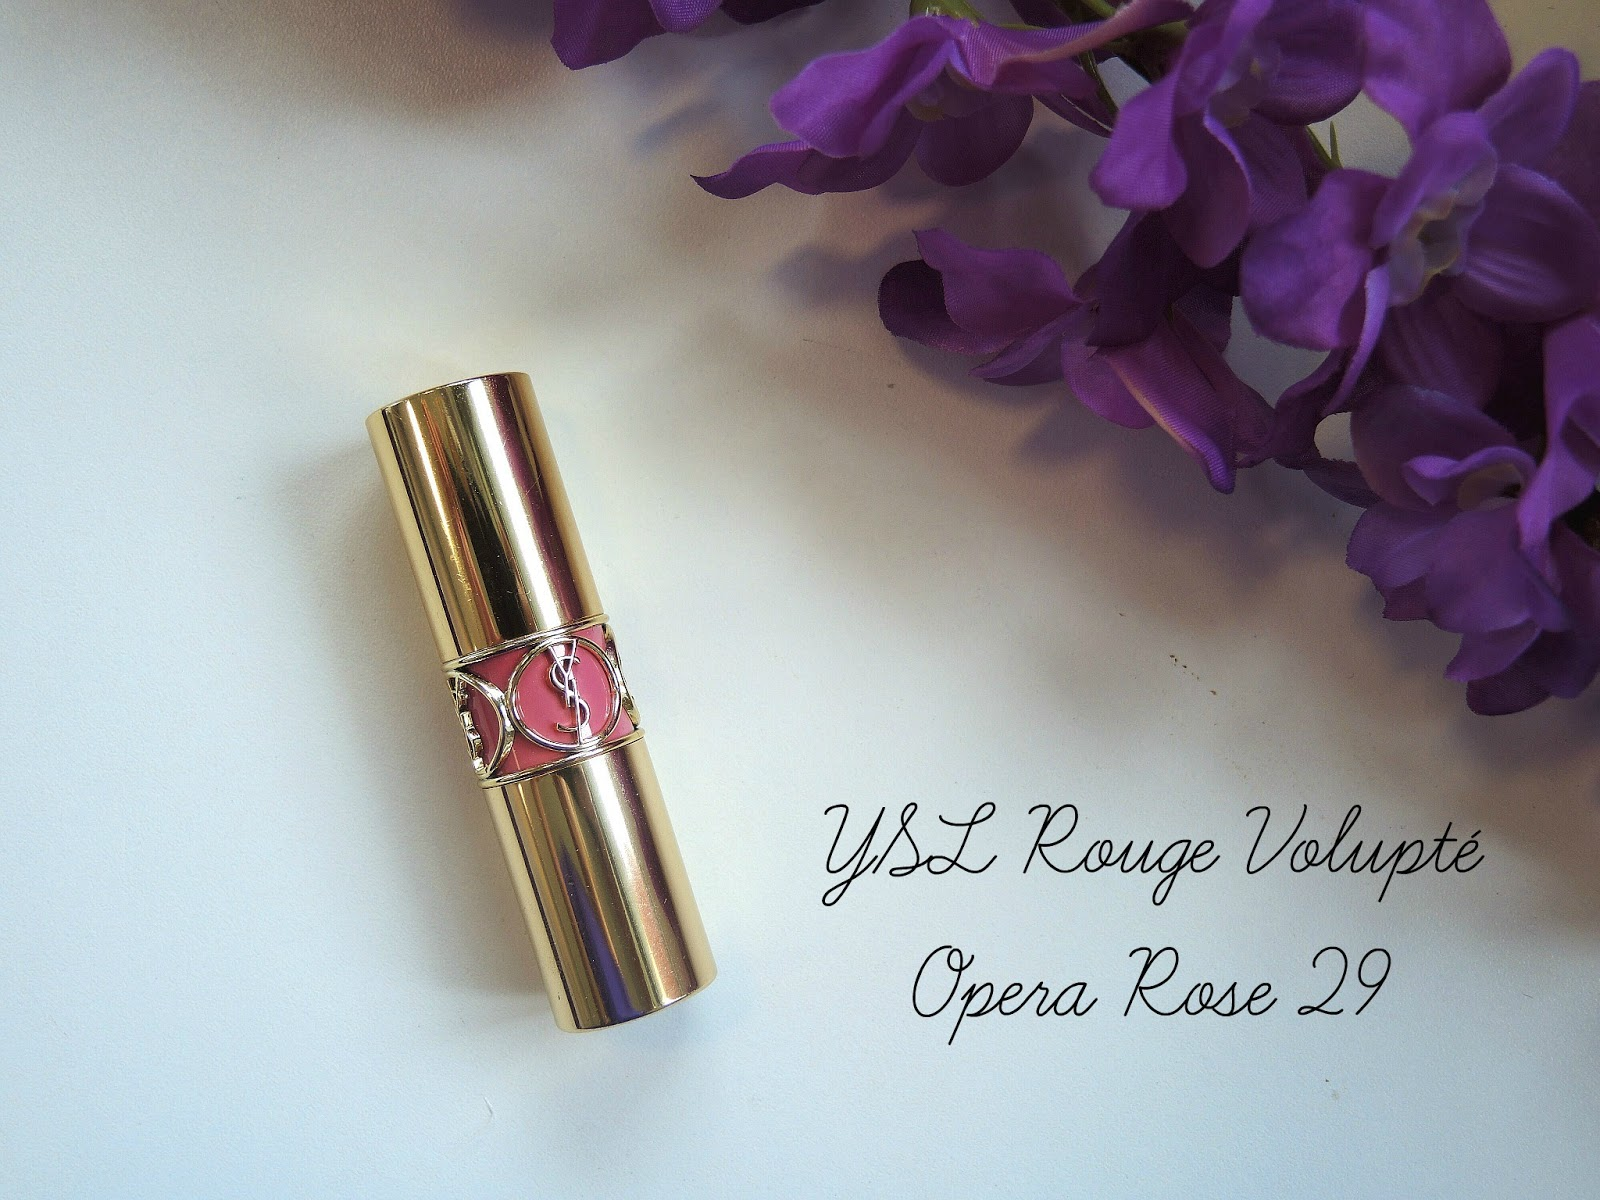 YSL Rouge Volupté Opera Rose #29